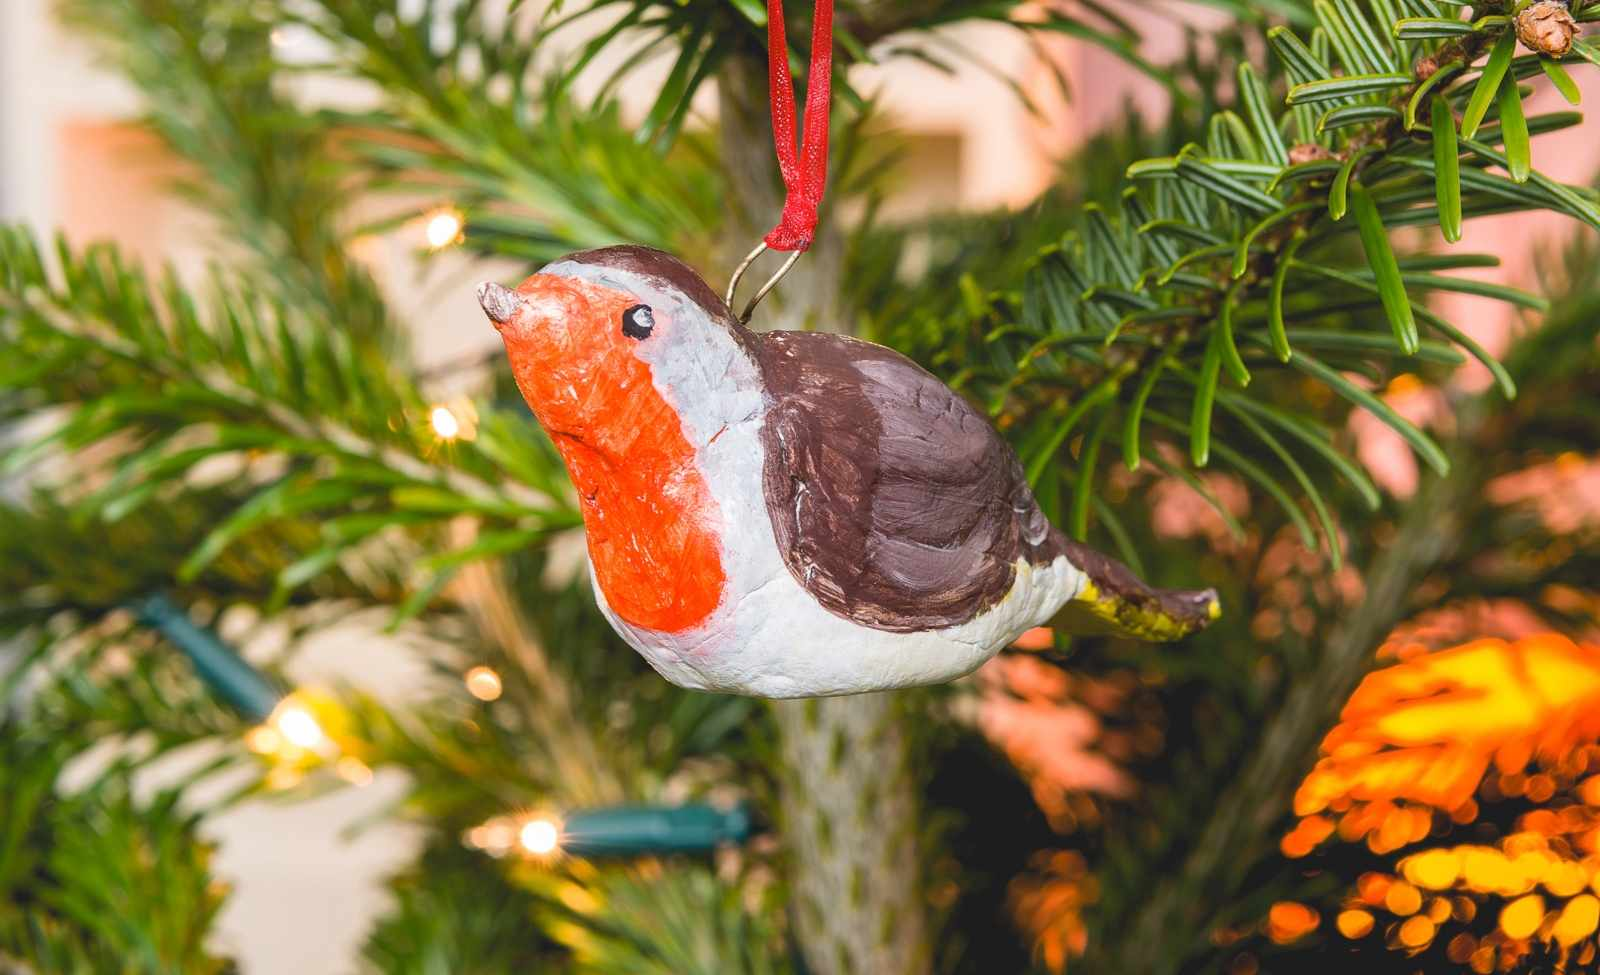 Countryfile_Xmas_decoration_1-3bb841d